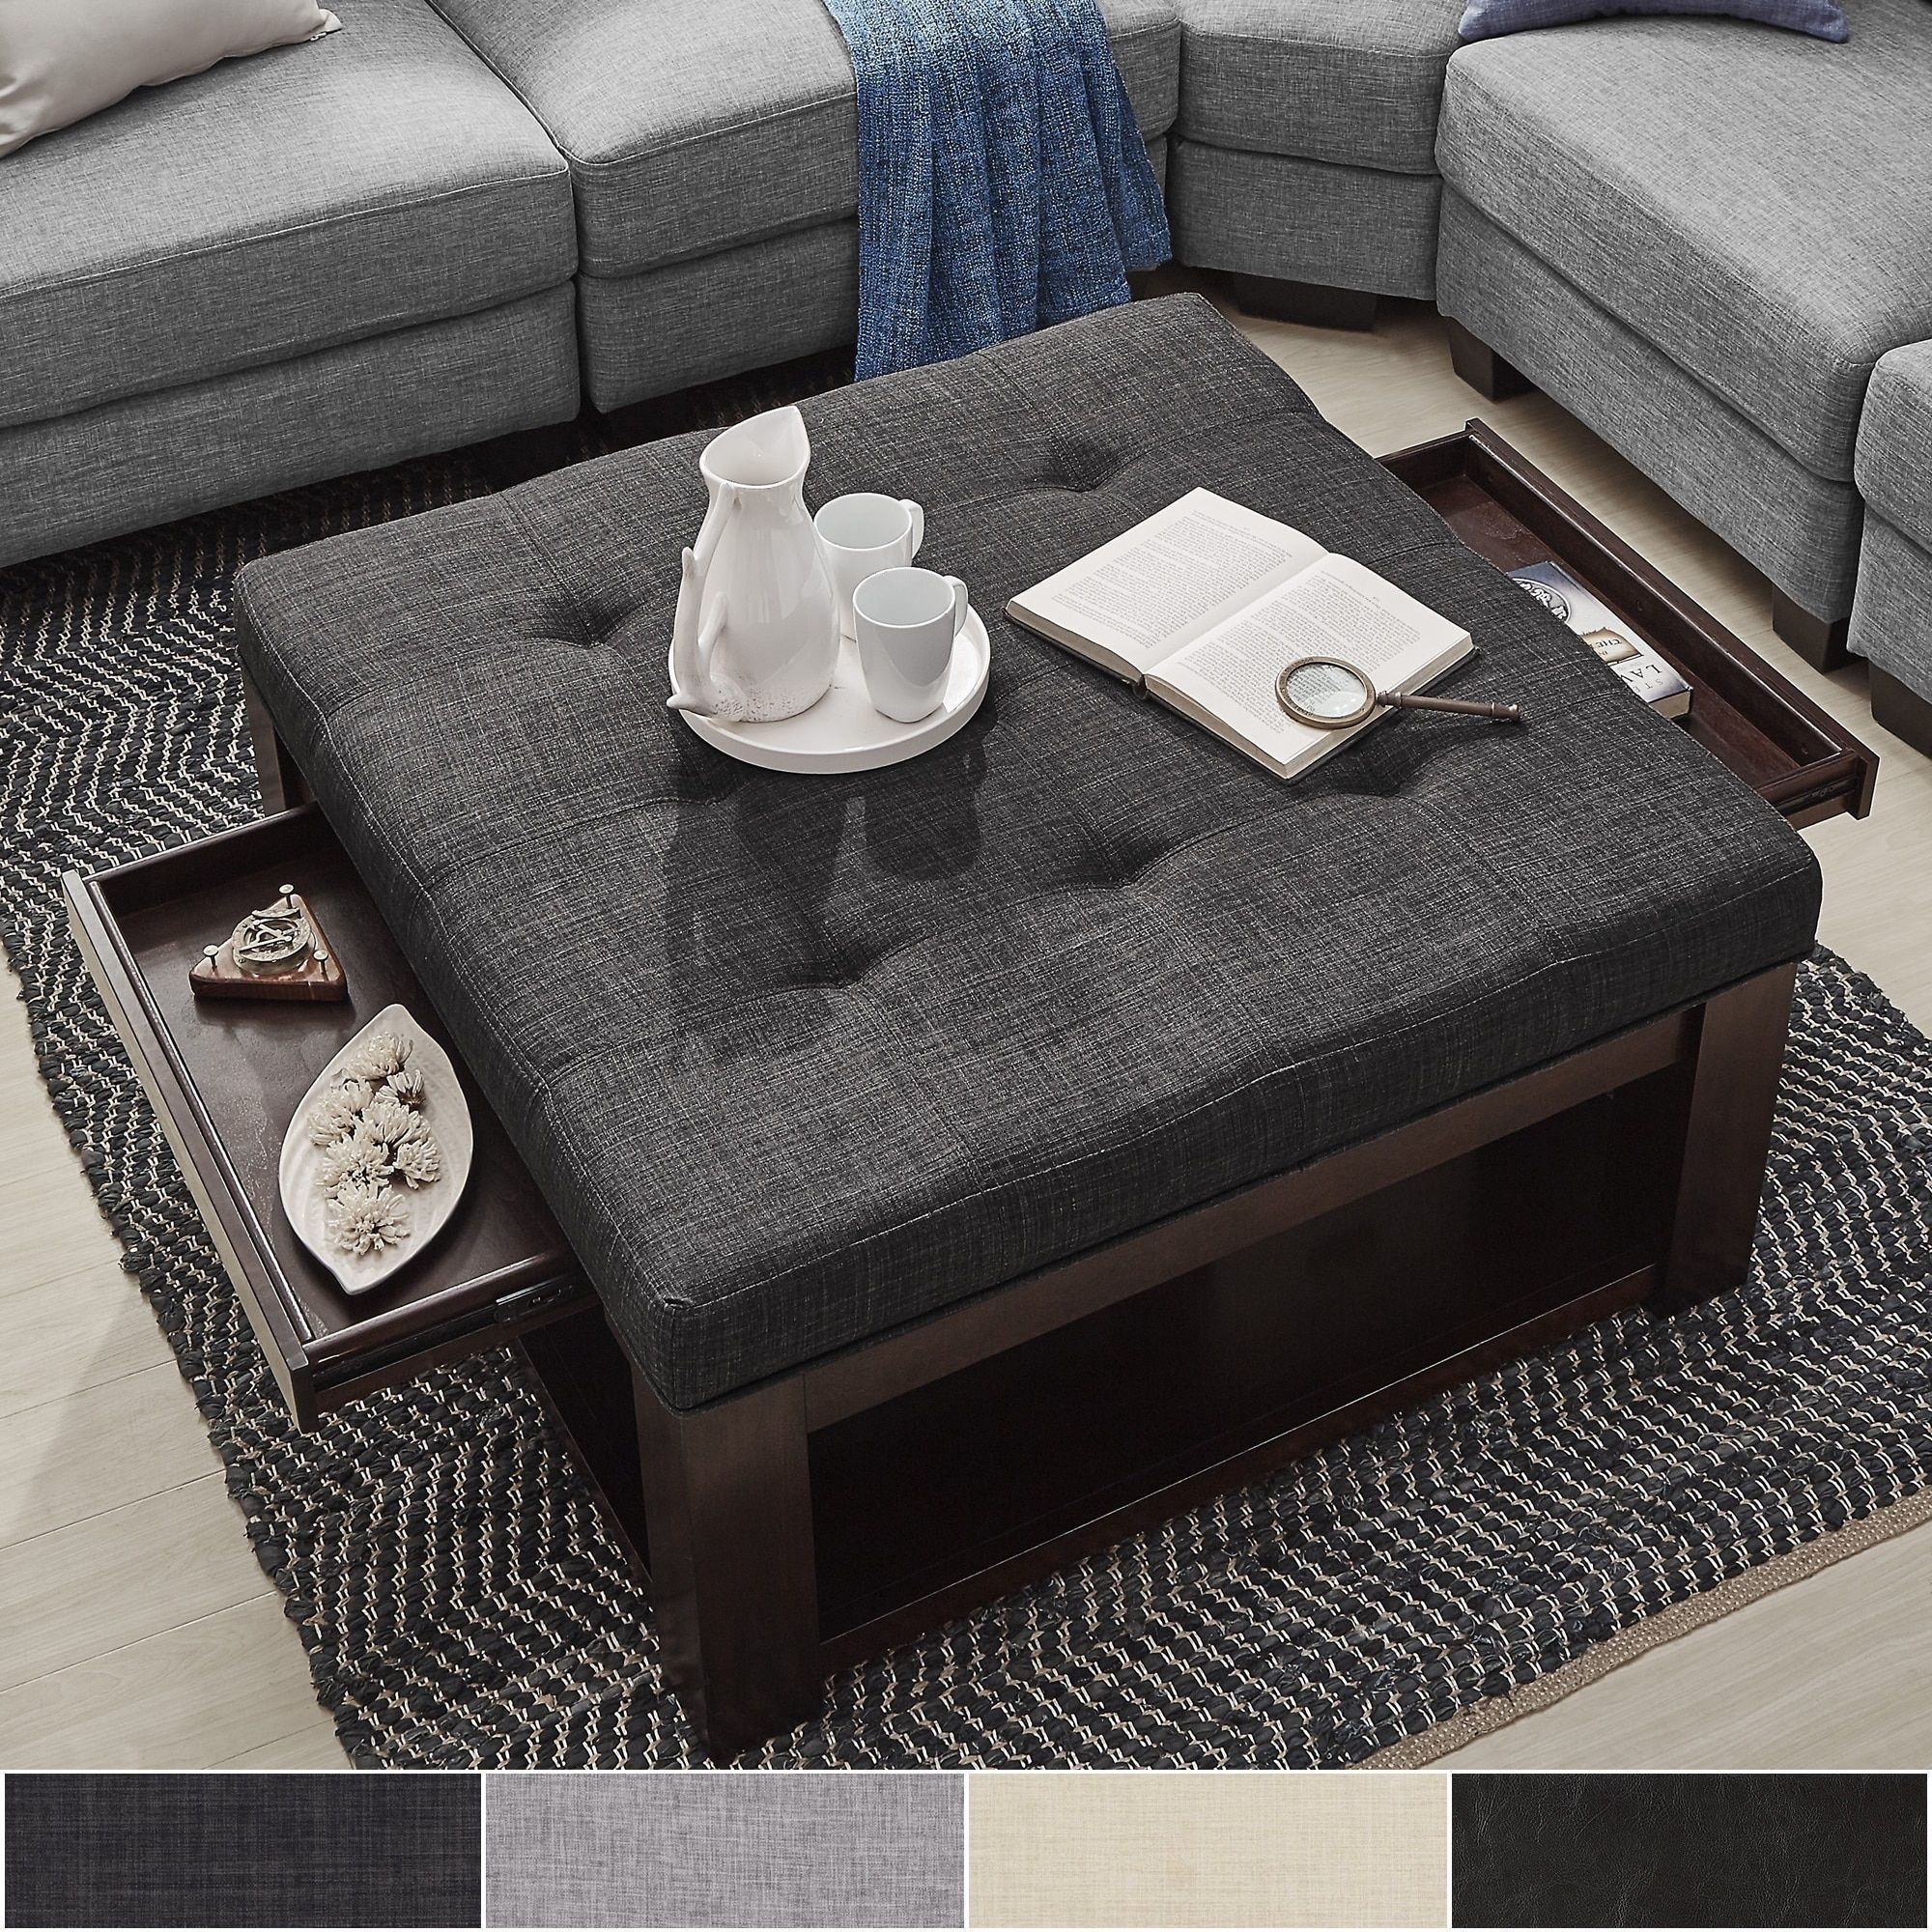 Oversized Square Ottoman Coffee Table In 2020 Storage Ottoman Coffee Table Square Storage Ottoman Square Ottoman Coffee Table [ 2000 x 2000 Pixel ]